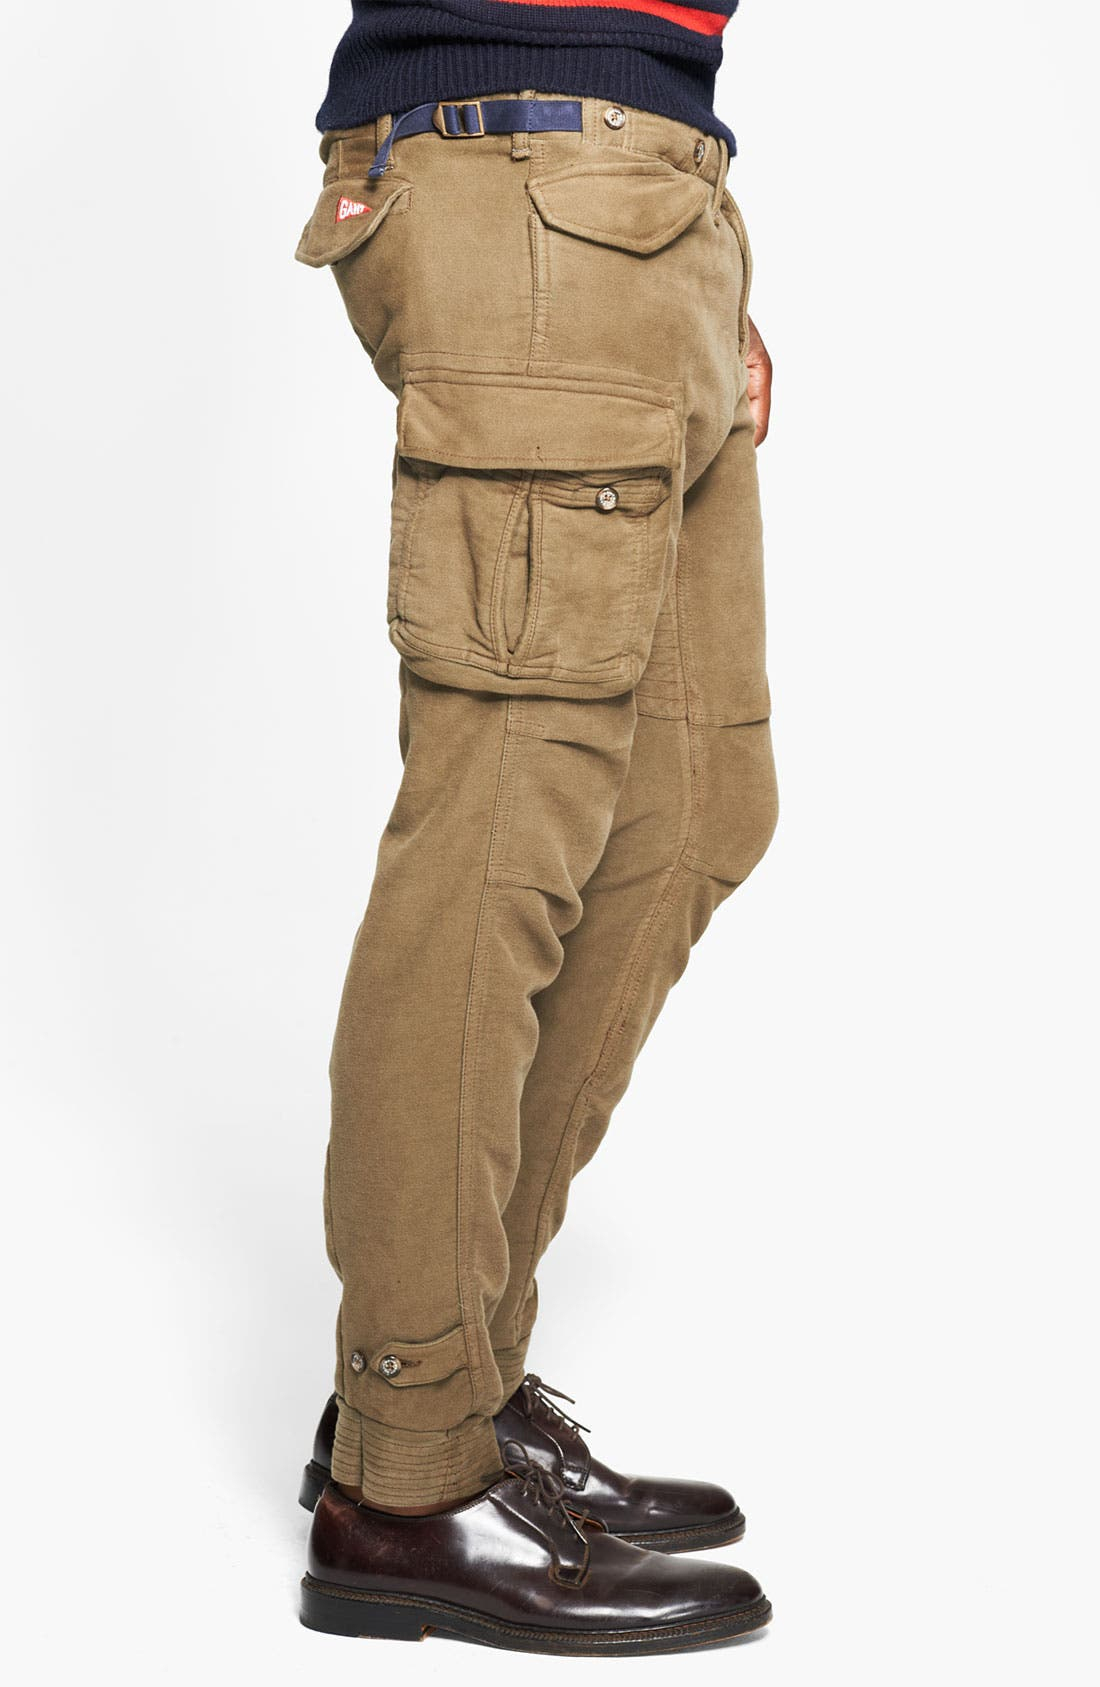 Skinny Moleskin Cotton Cargo Pants,                             Alternate thumbnail 4, color,                             301